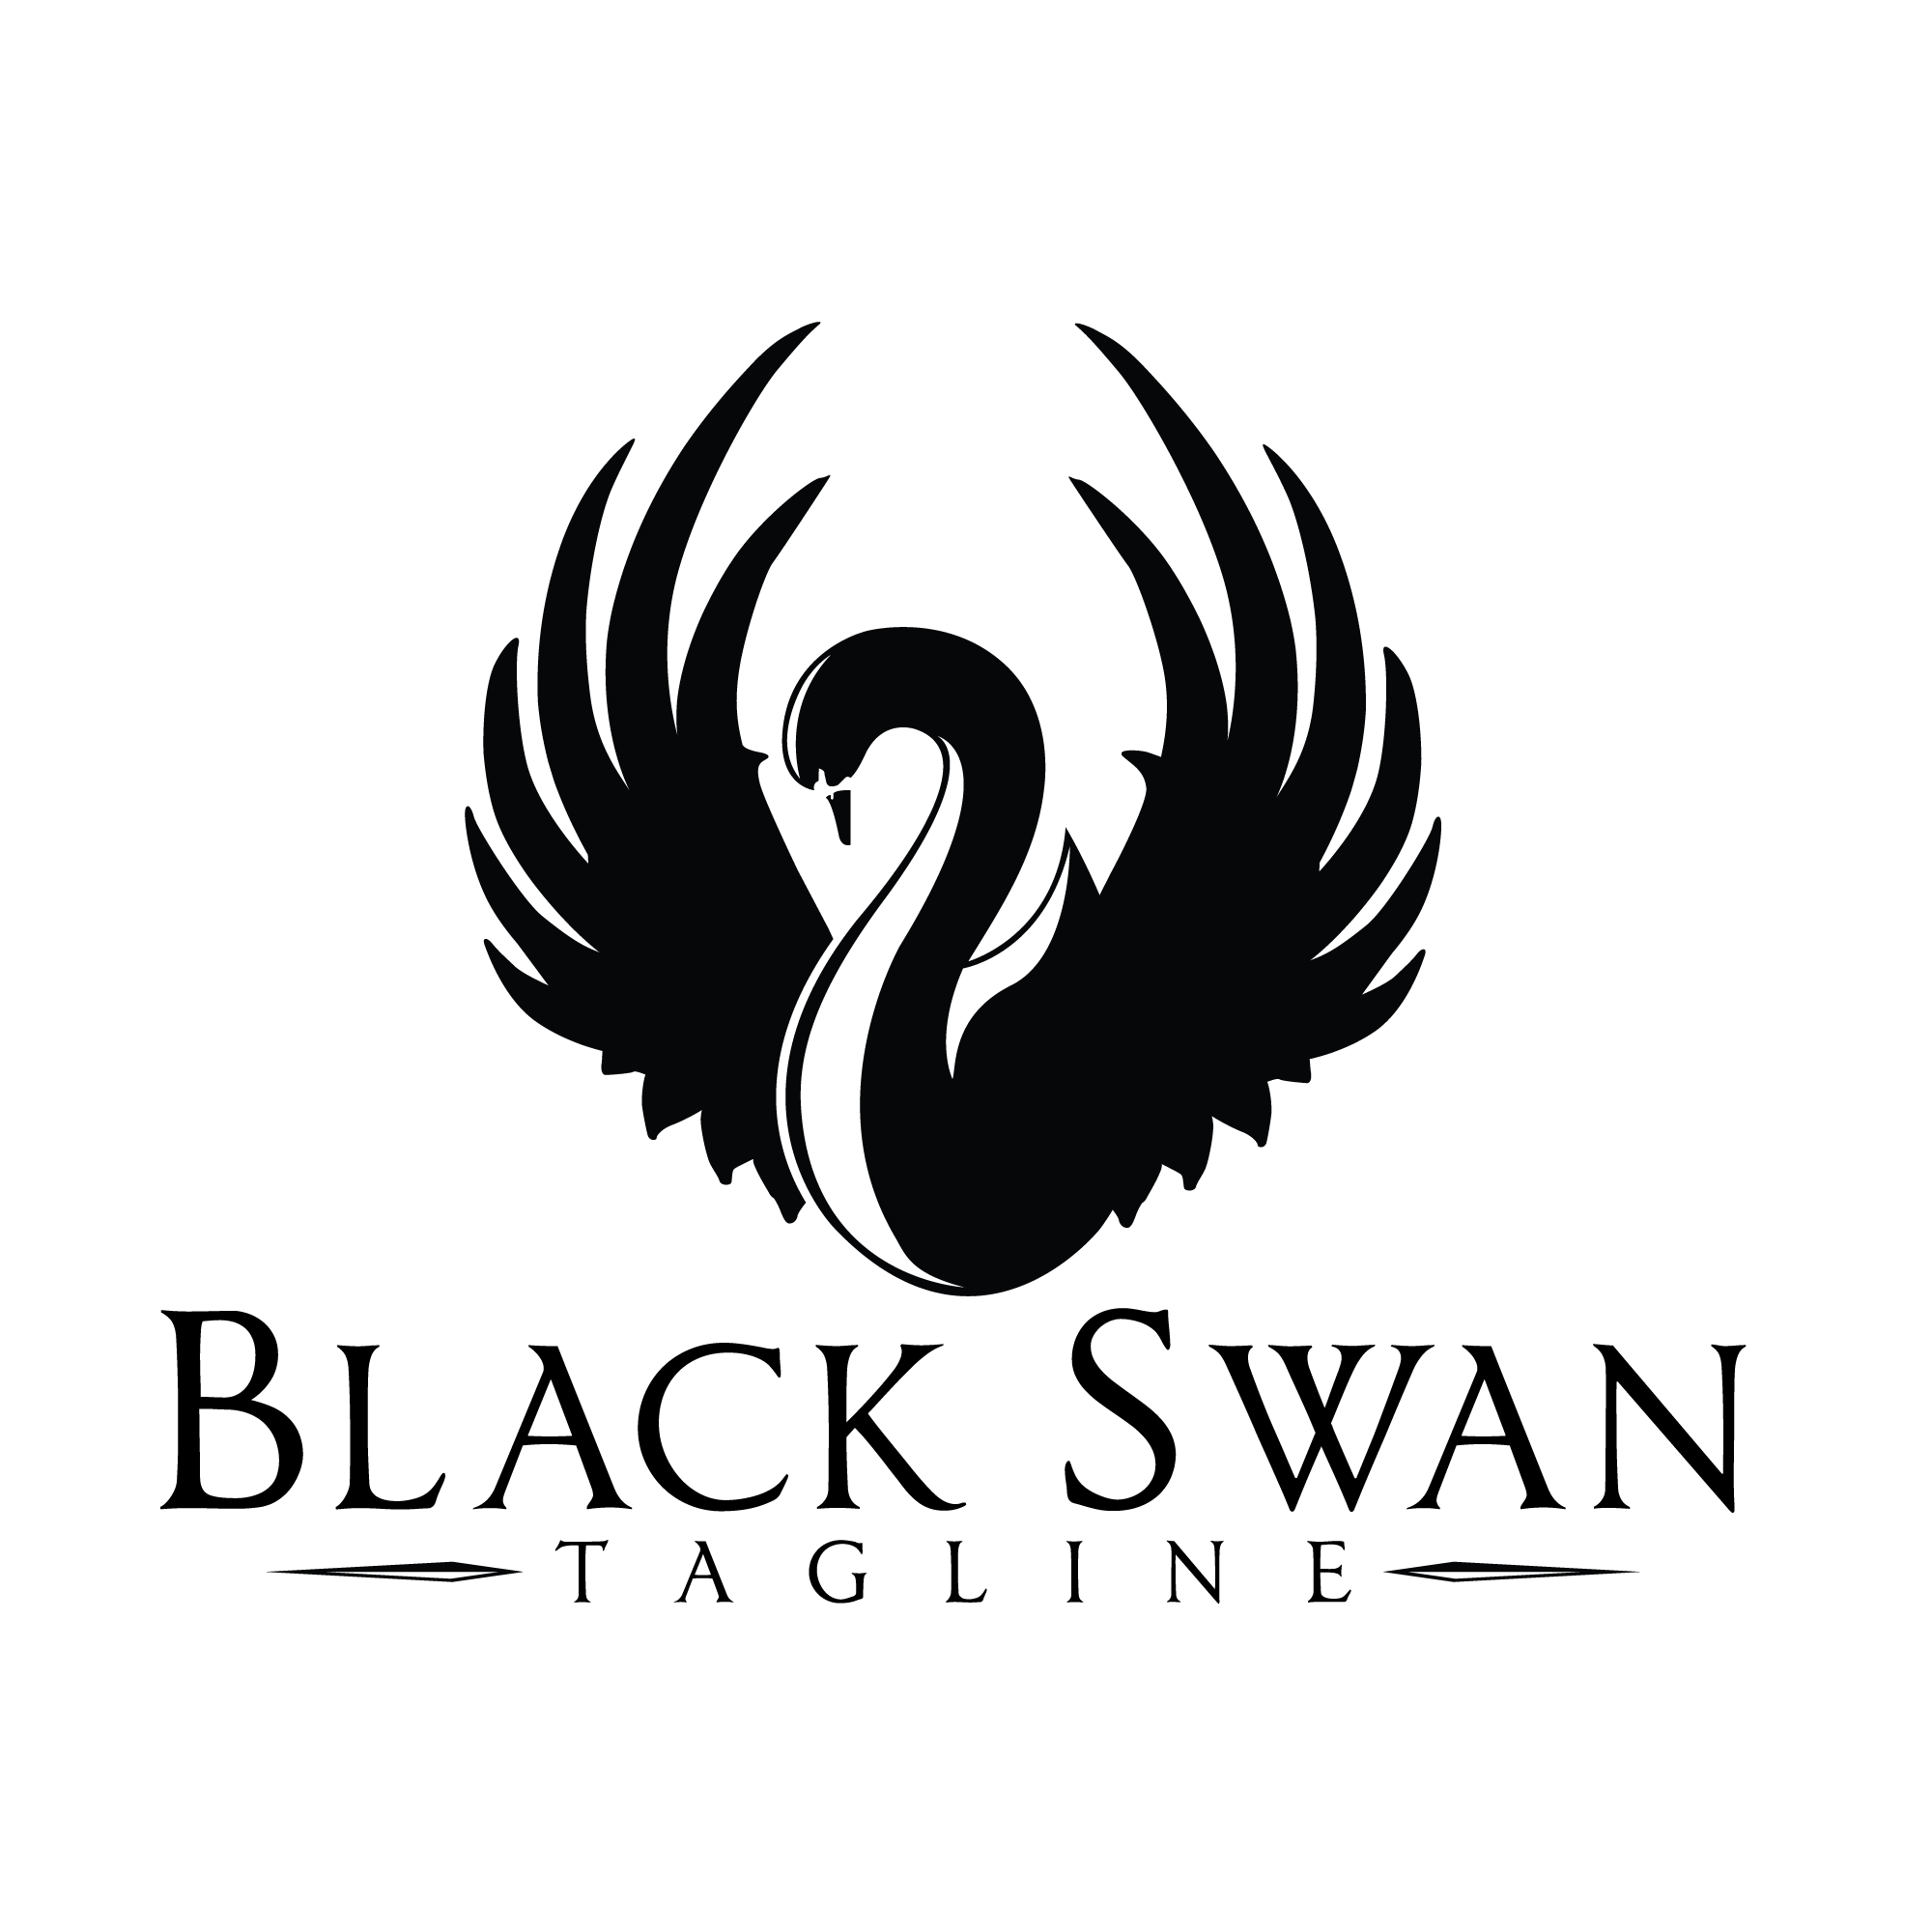 Black swan logo. Swan drawing, Black swan, Black swan tattoo